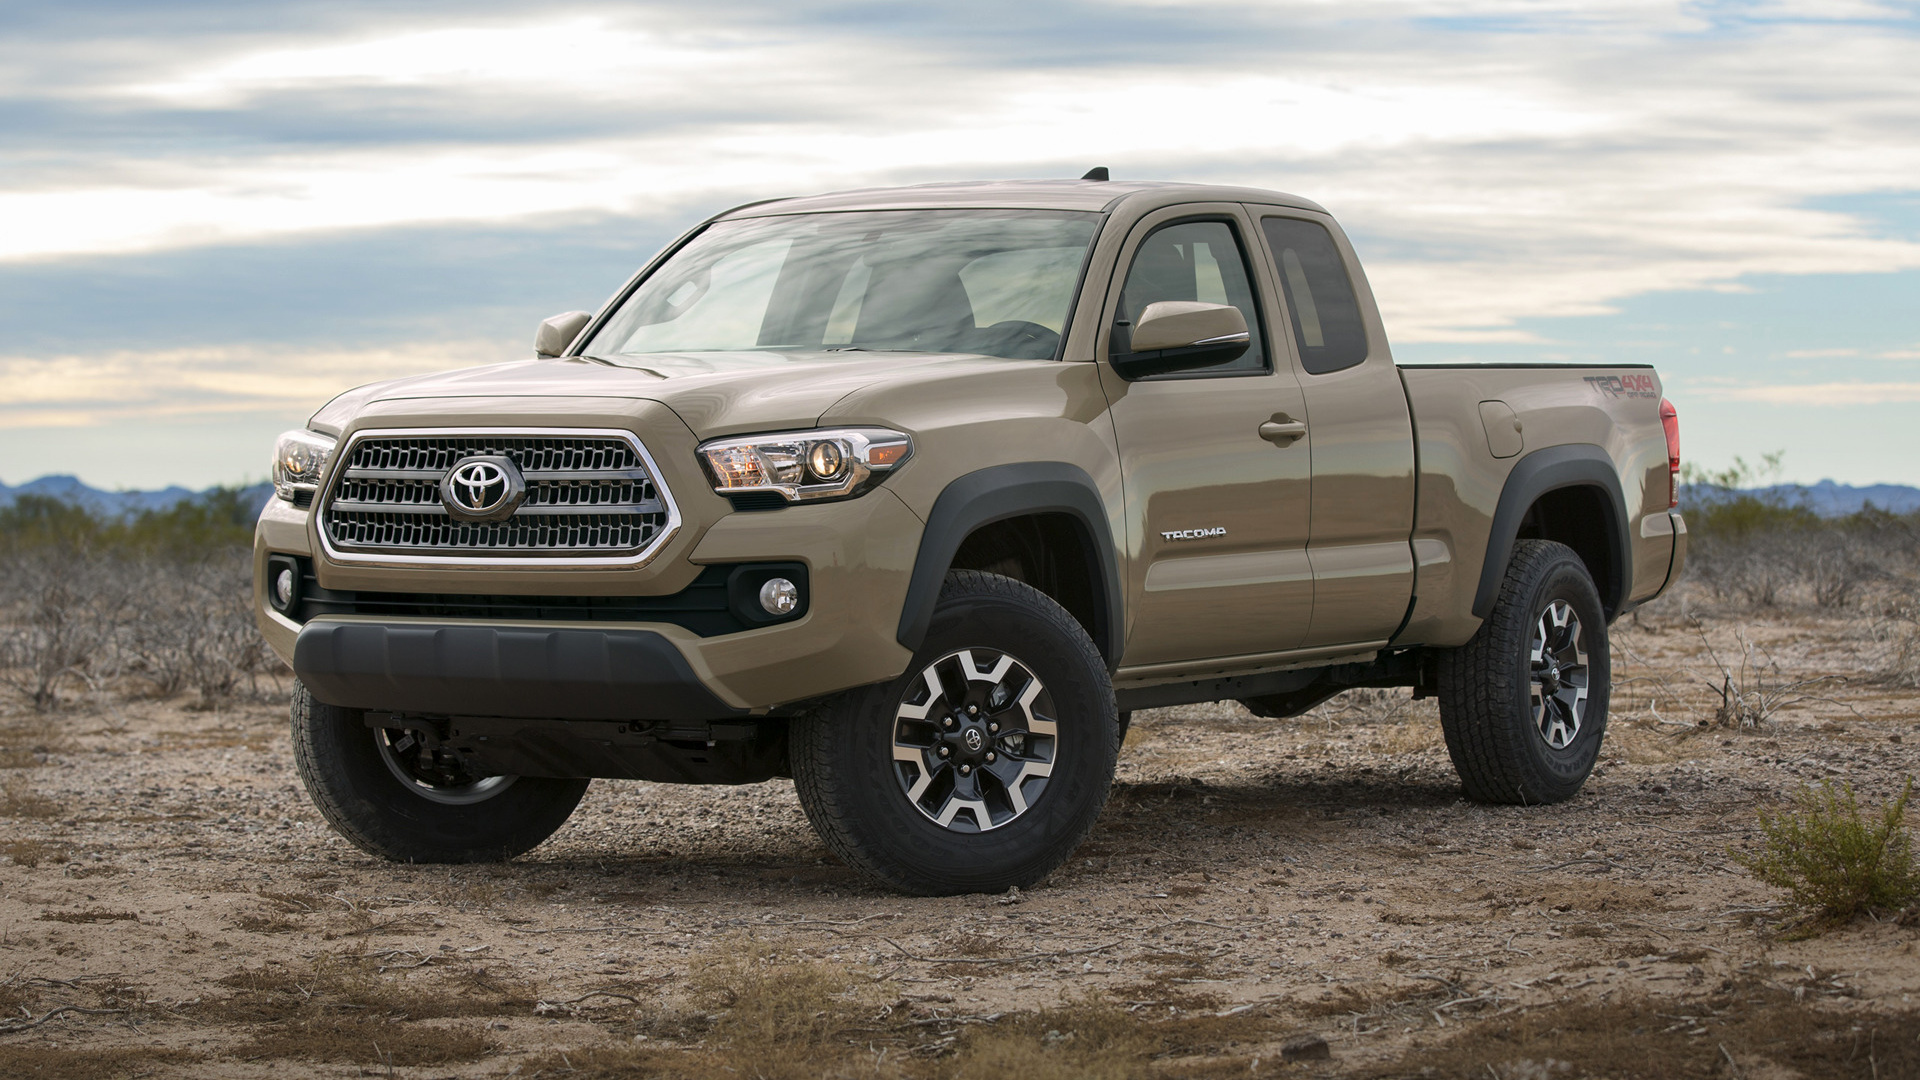 Toyota Tacoma Trd Off Road Access Cab Wallpaper Hd on Dodge Dakota Single Cab 4x4